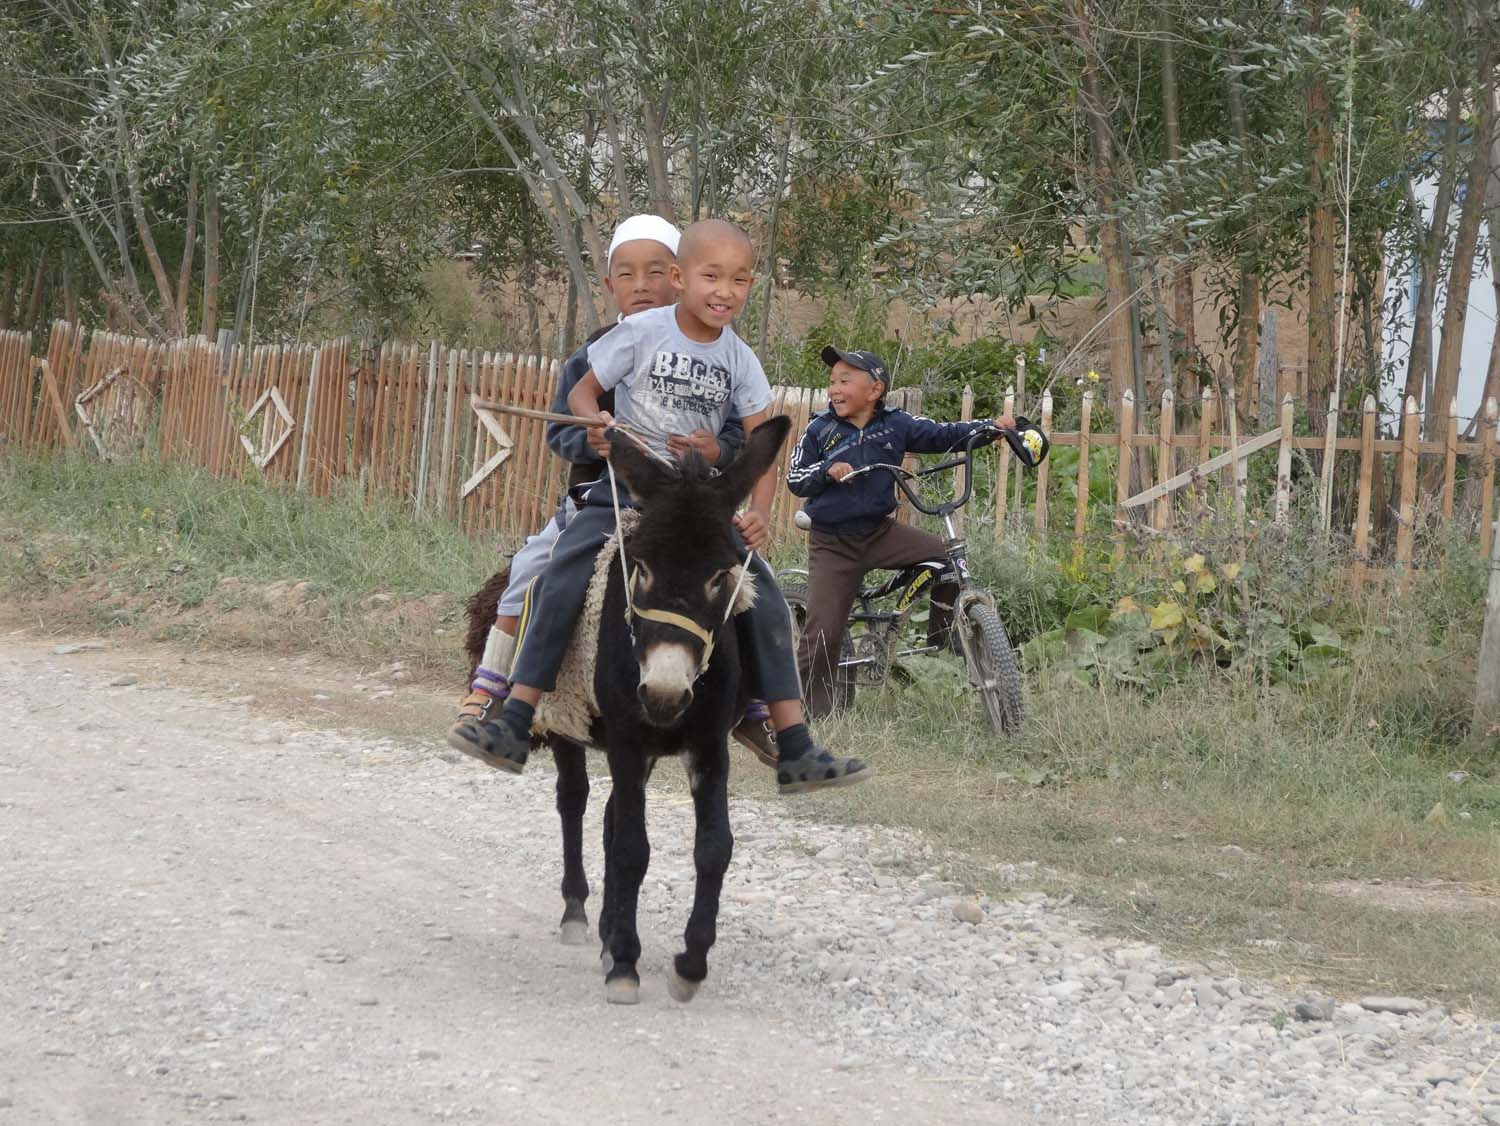 2 boys riding a donkey, usually adults ride them which always looks a bit silly